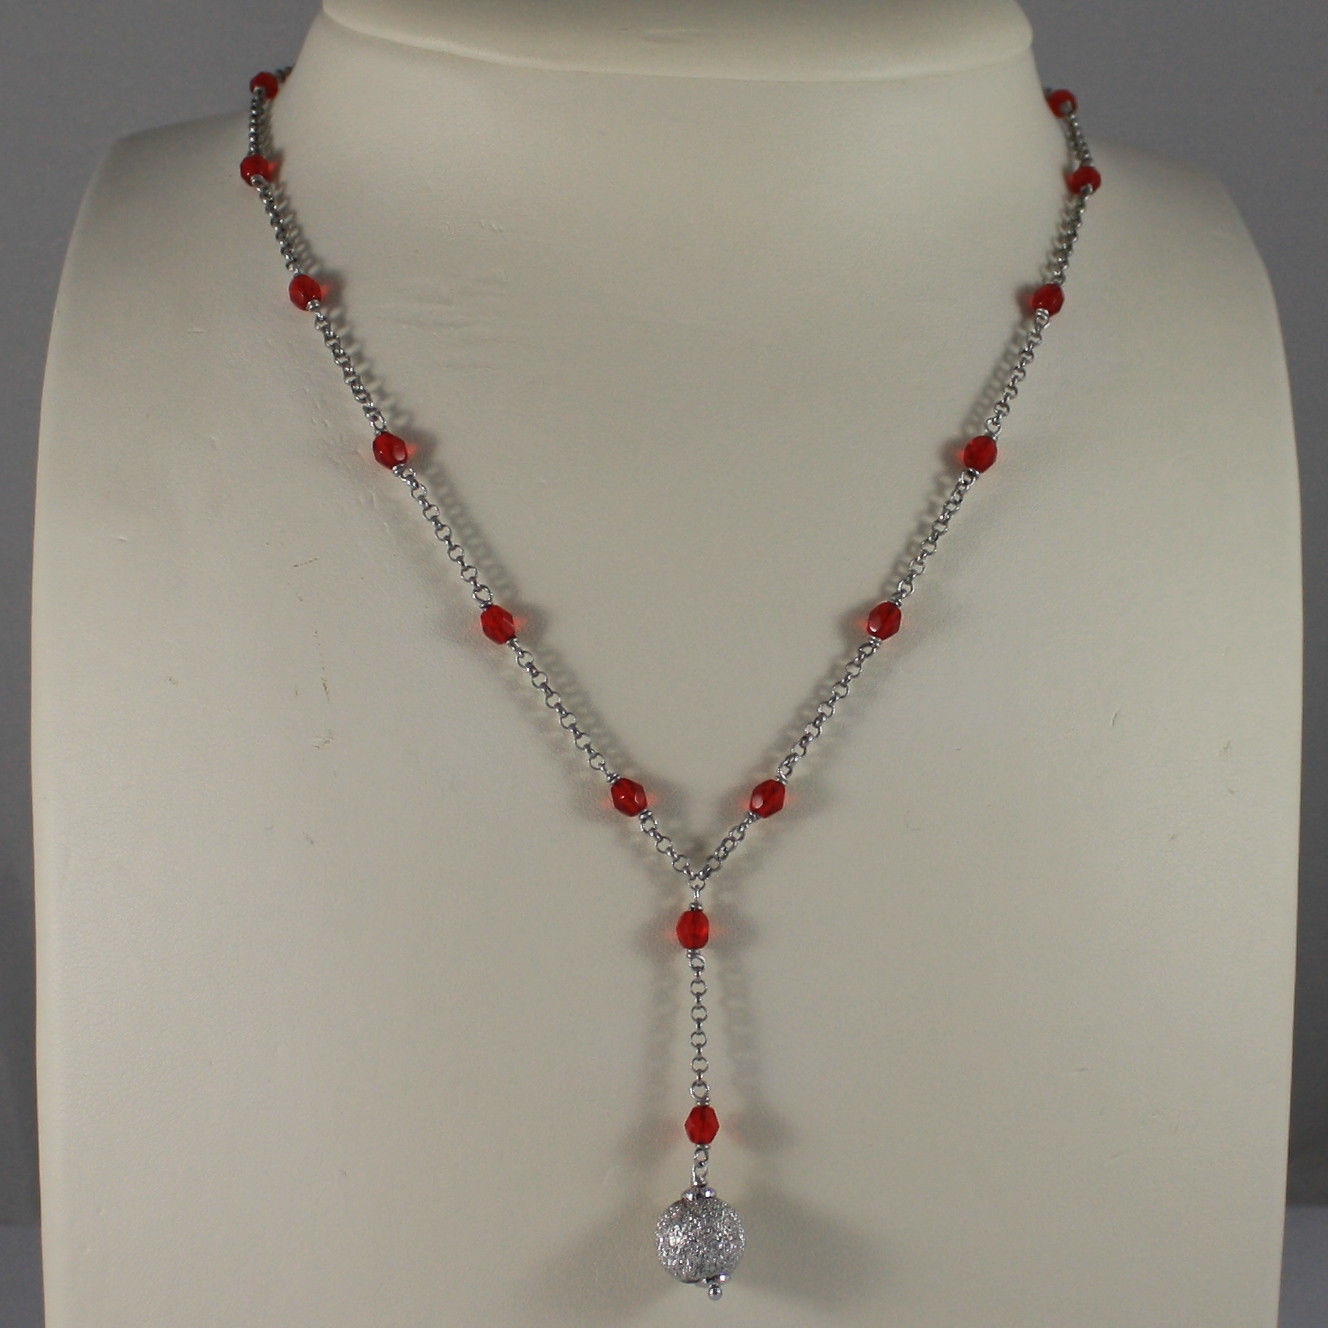 .925 SILVER RHODIUM NECKLACE WITH RED CRYSTALS AND SILVER SPHERE